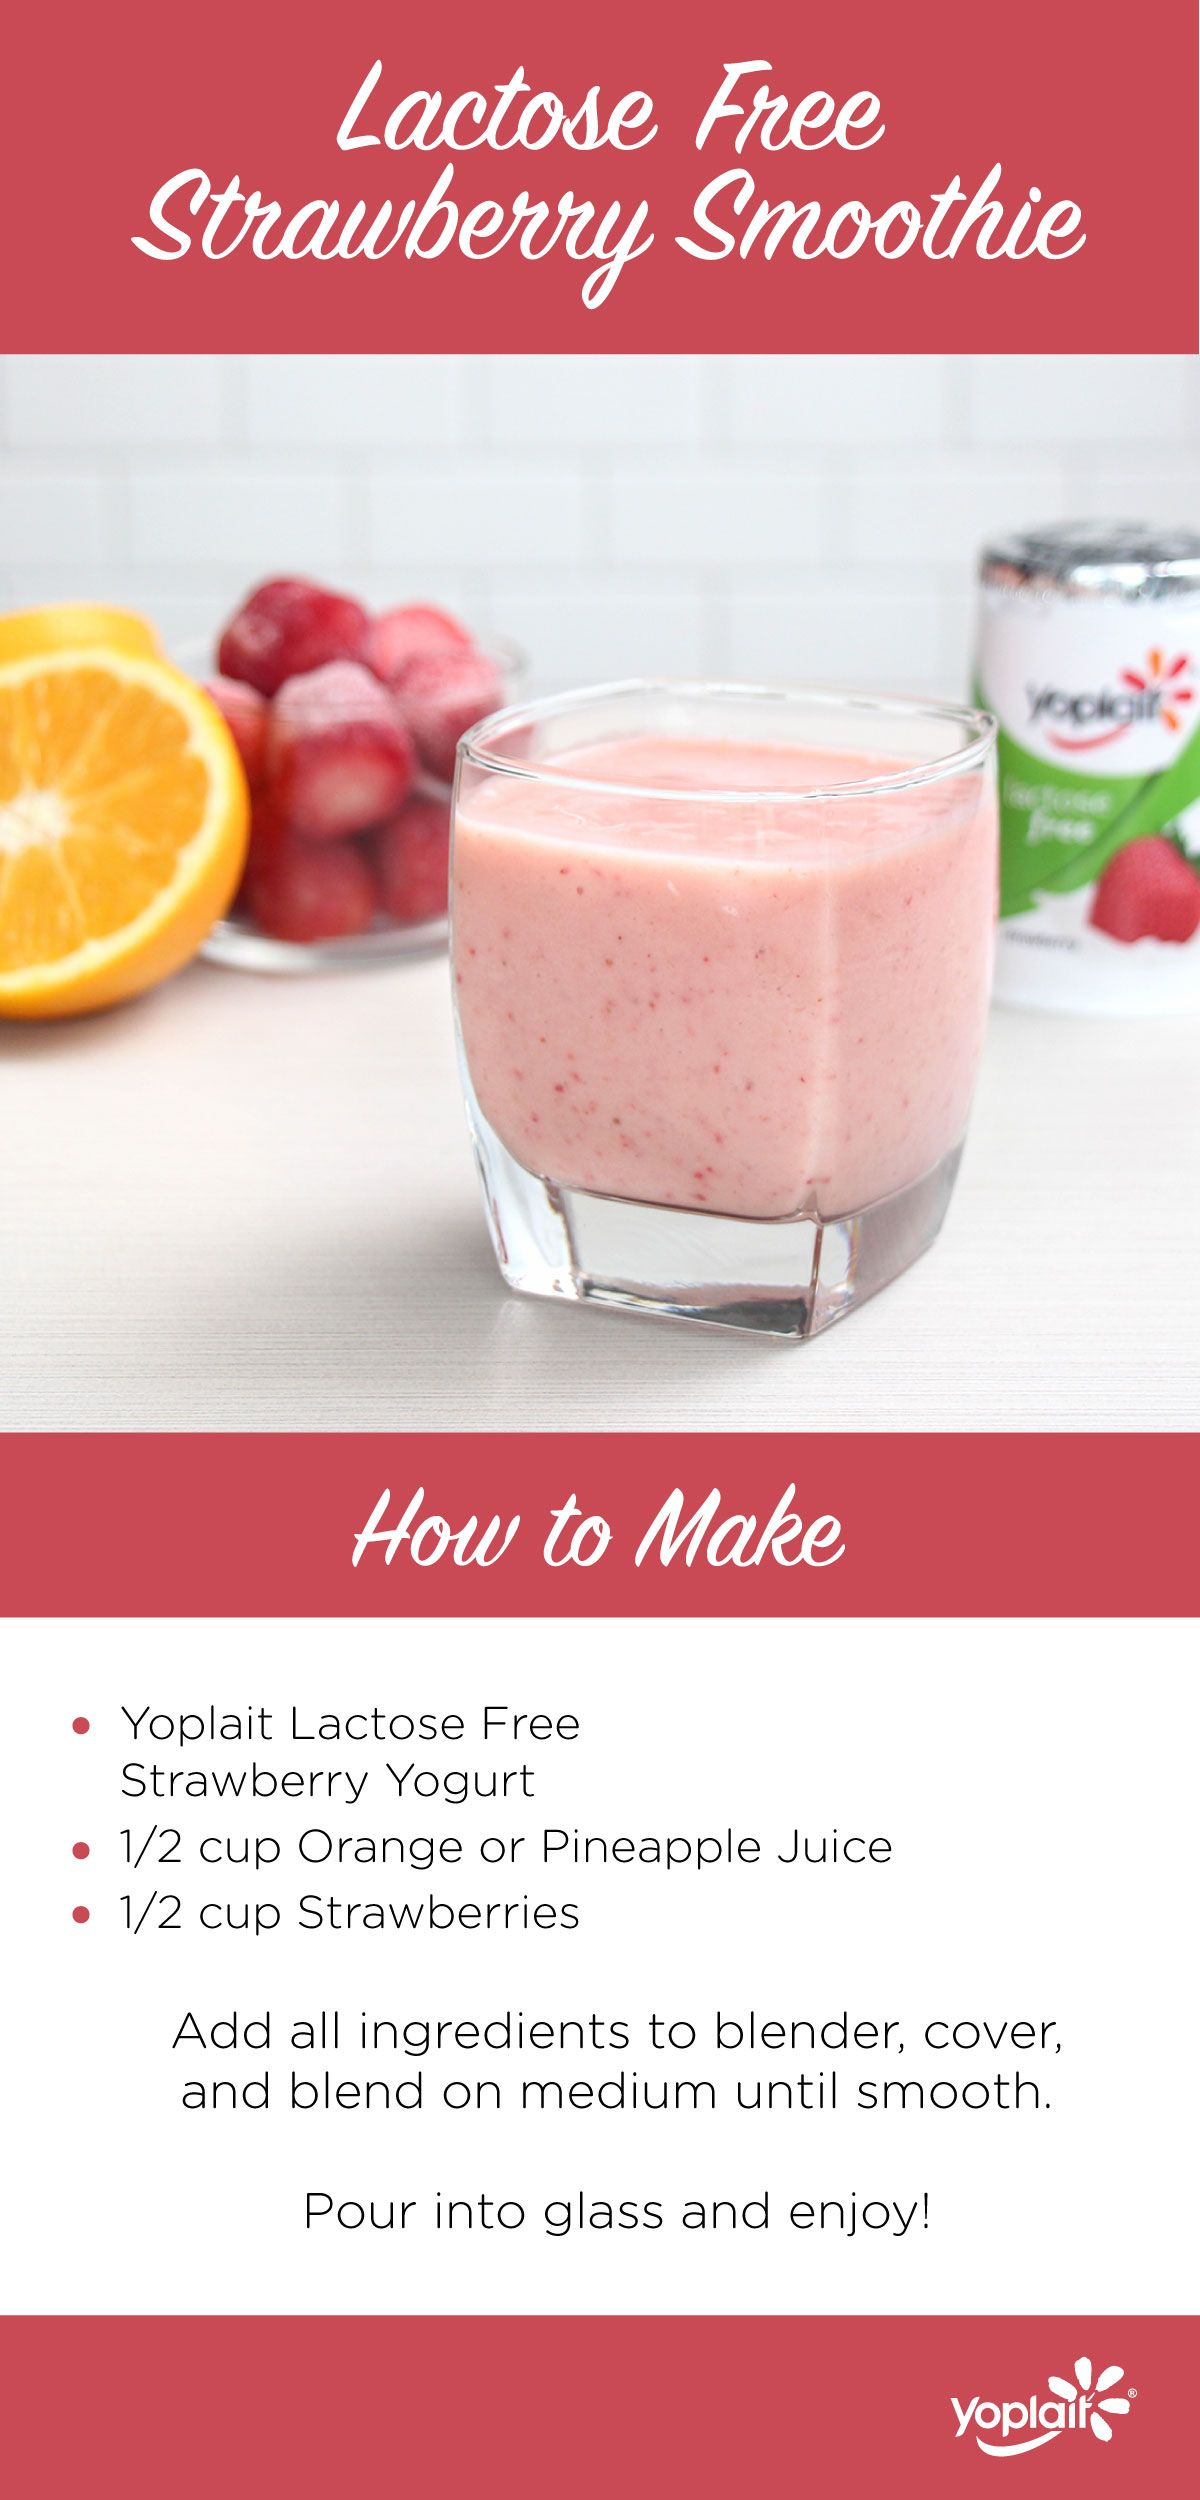 Yoplait Lactose Free Strawberry Yogurt Smoothie So Tasty You Won T Notice The Difference